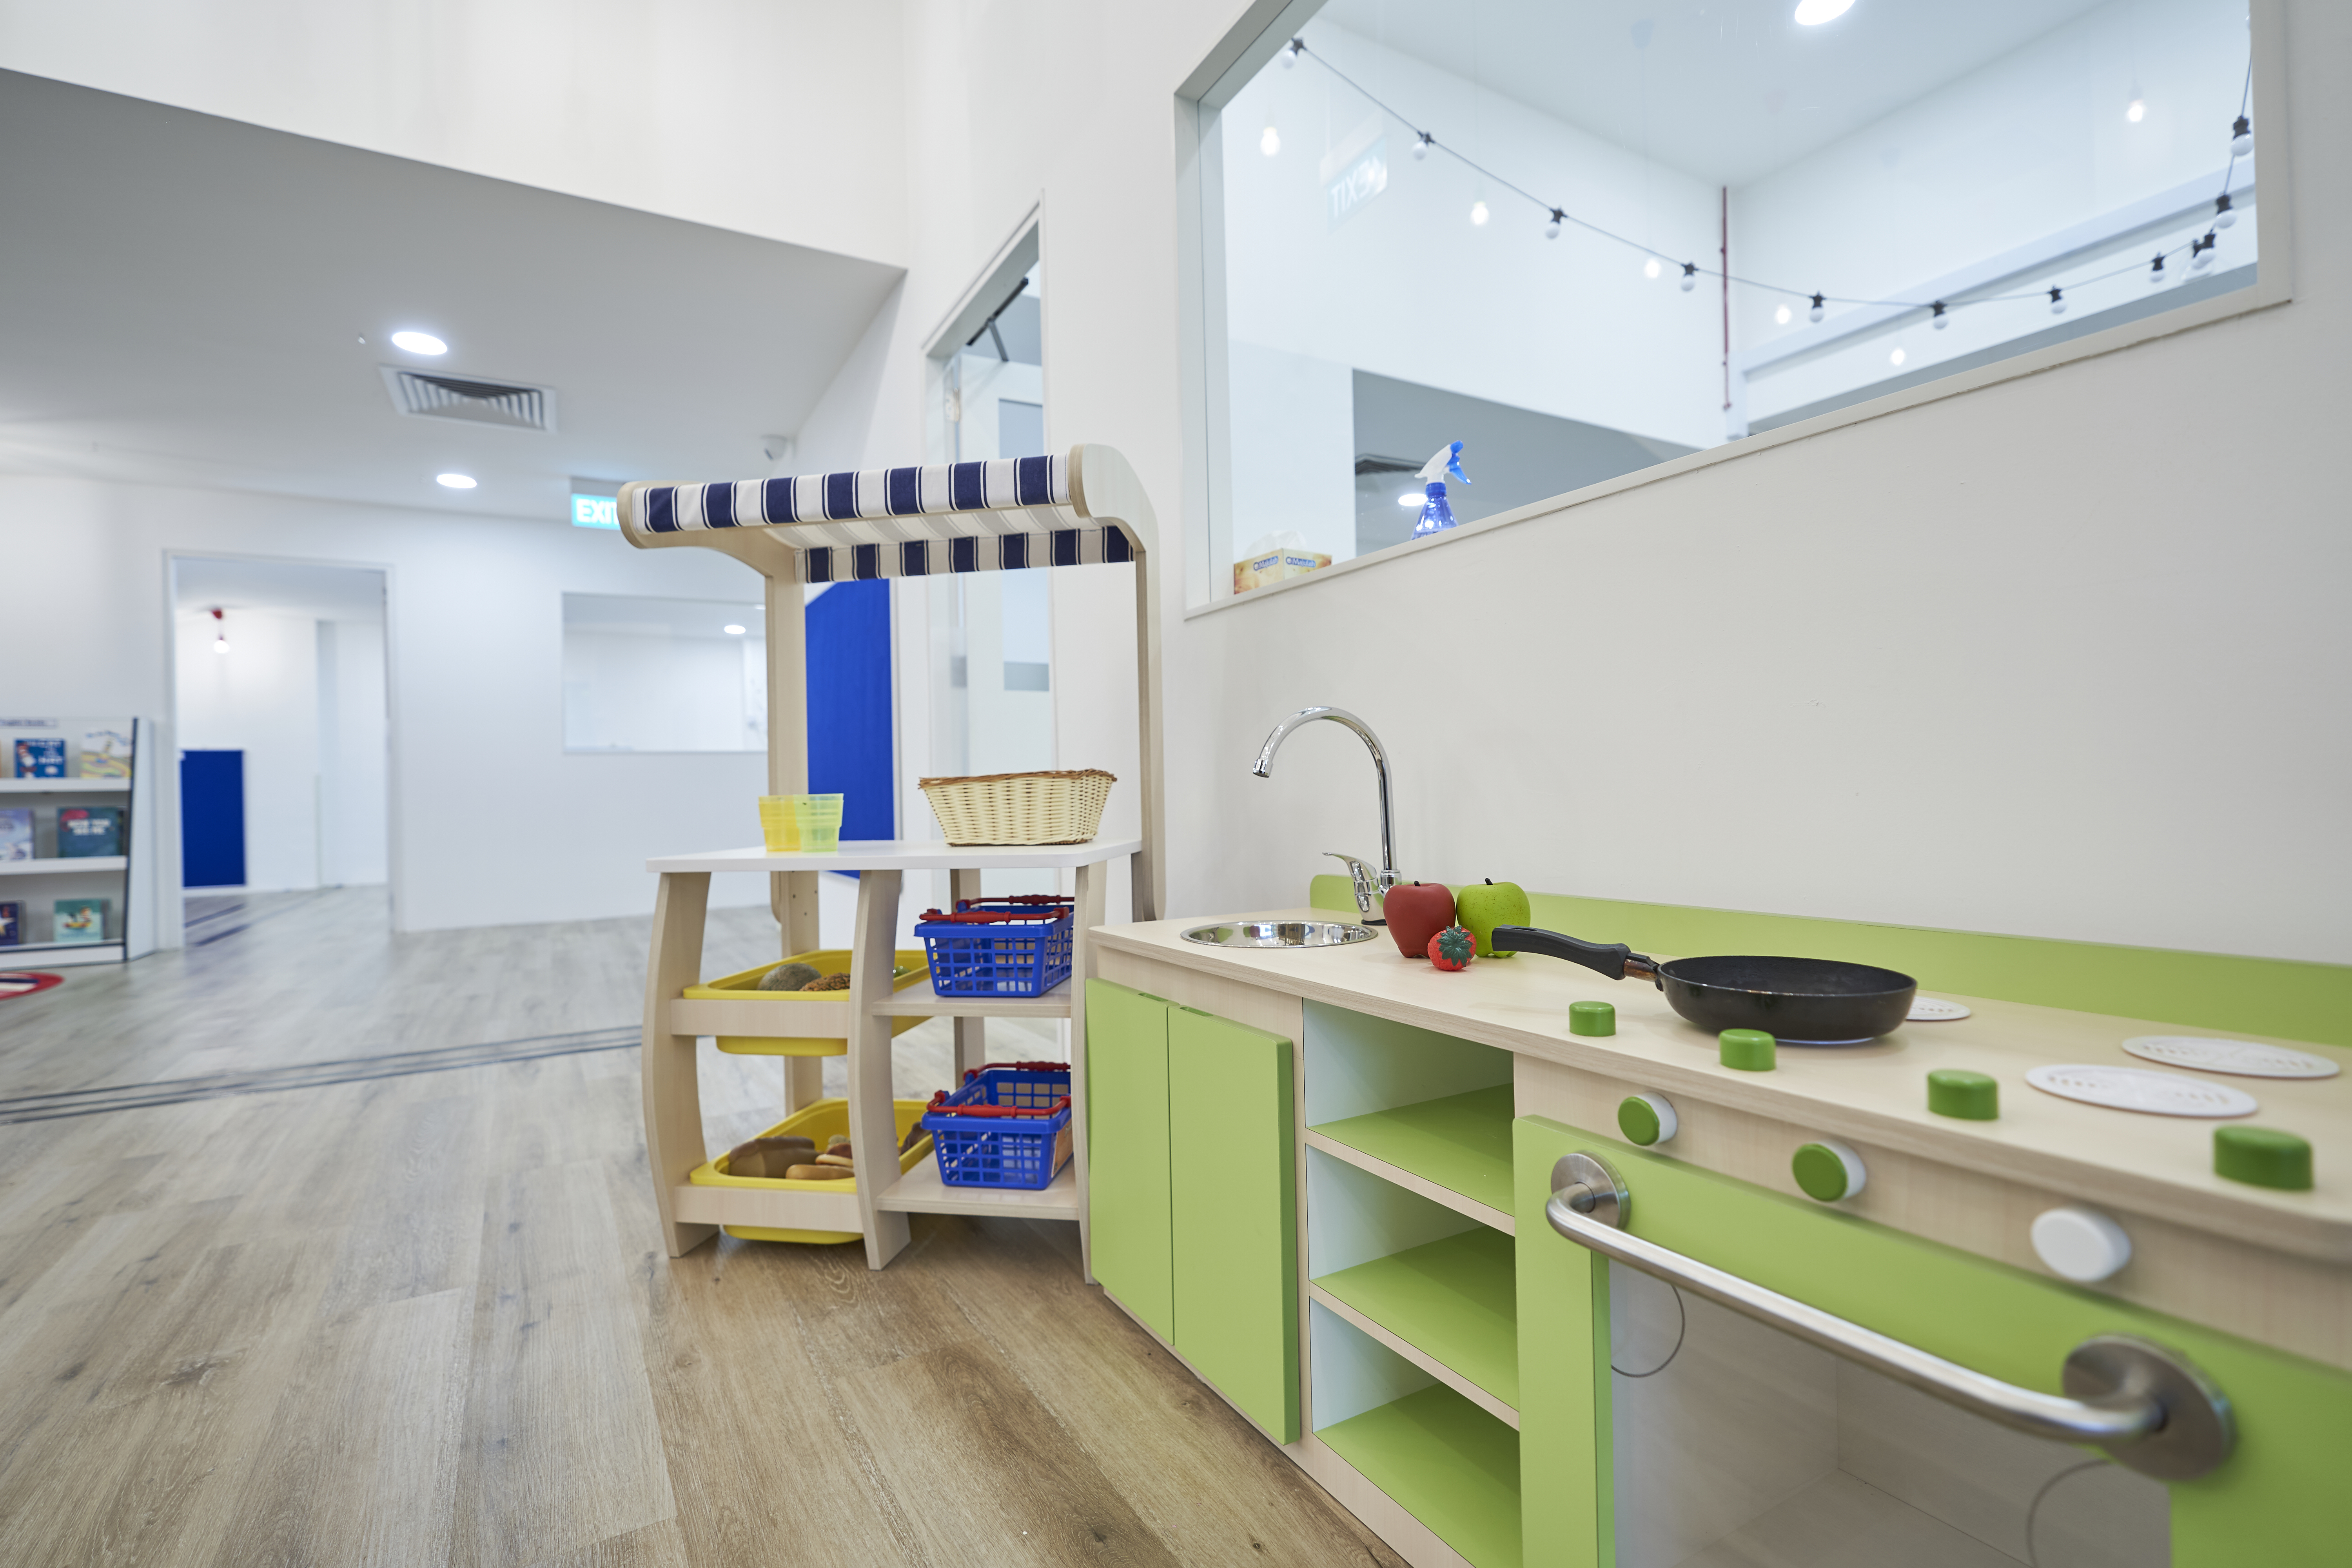 TPY Kitchen Play area close up